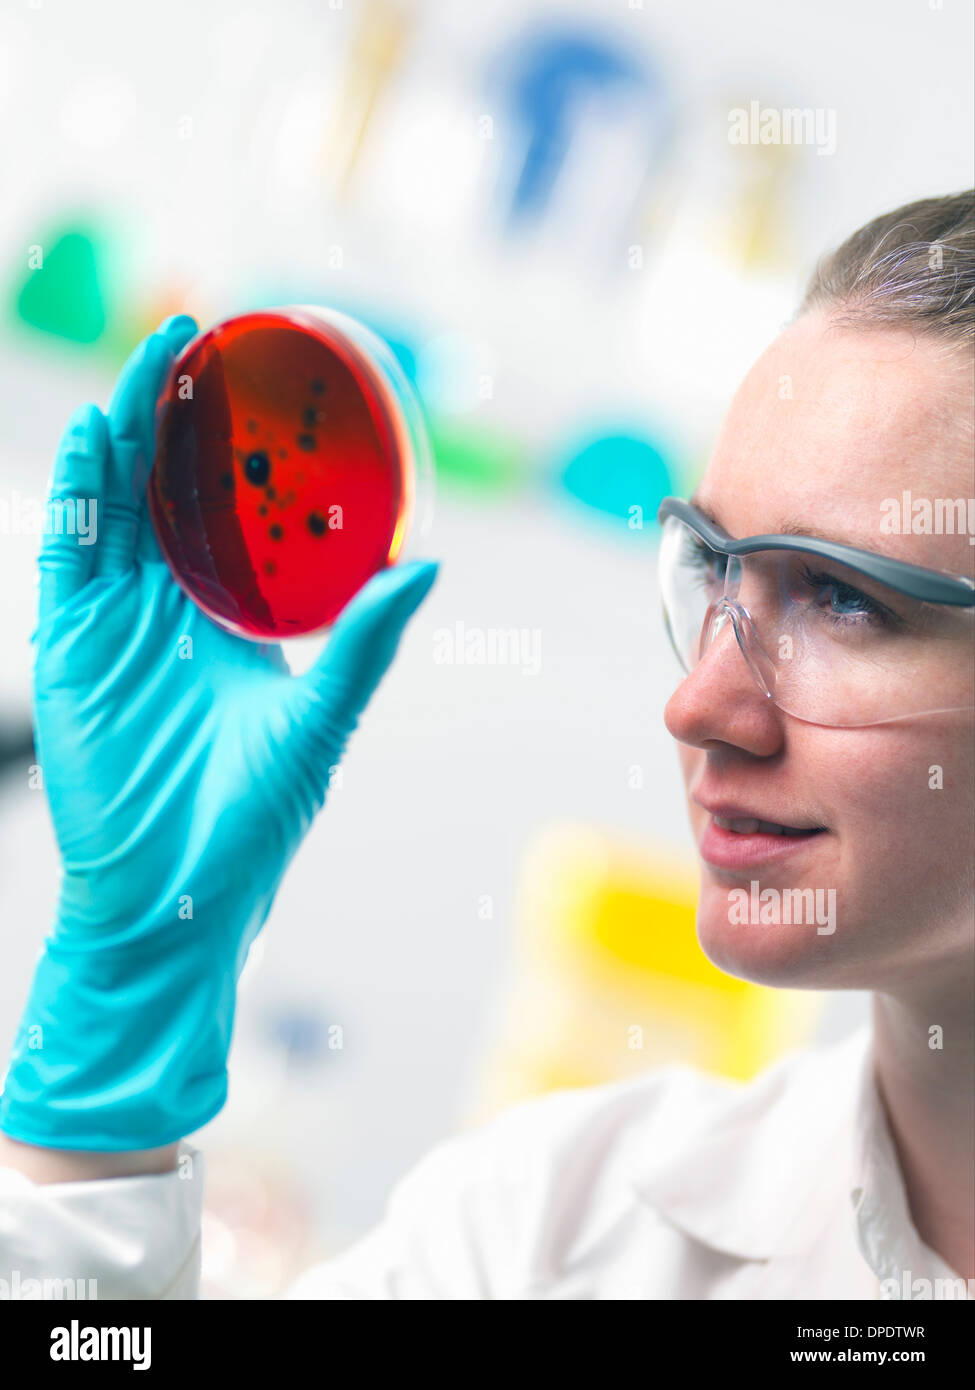 Scientist viewing cell cultures growing in petri dishes in lab - Stock Image